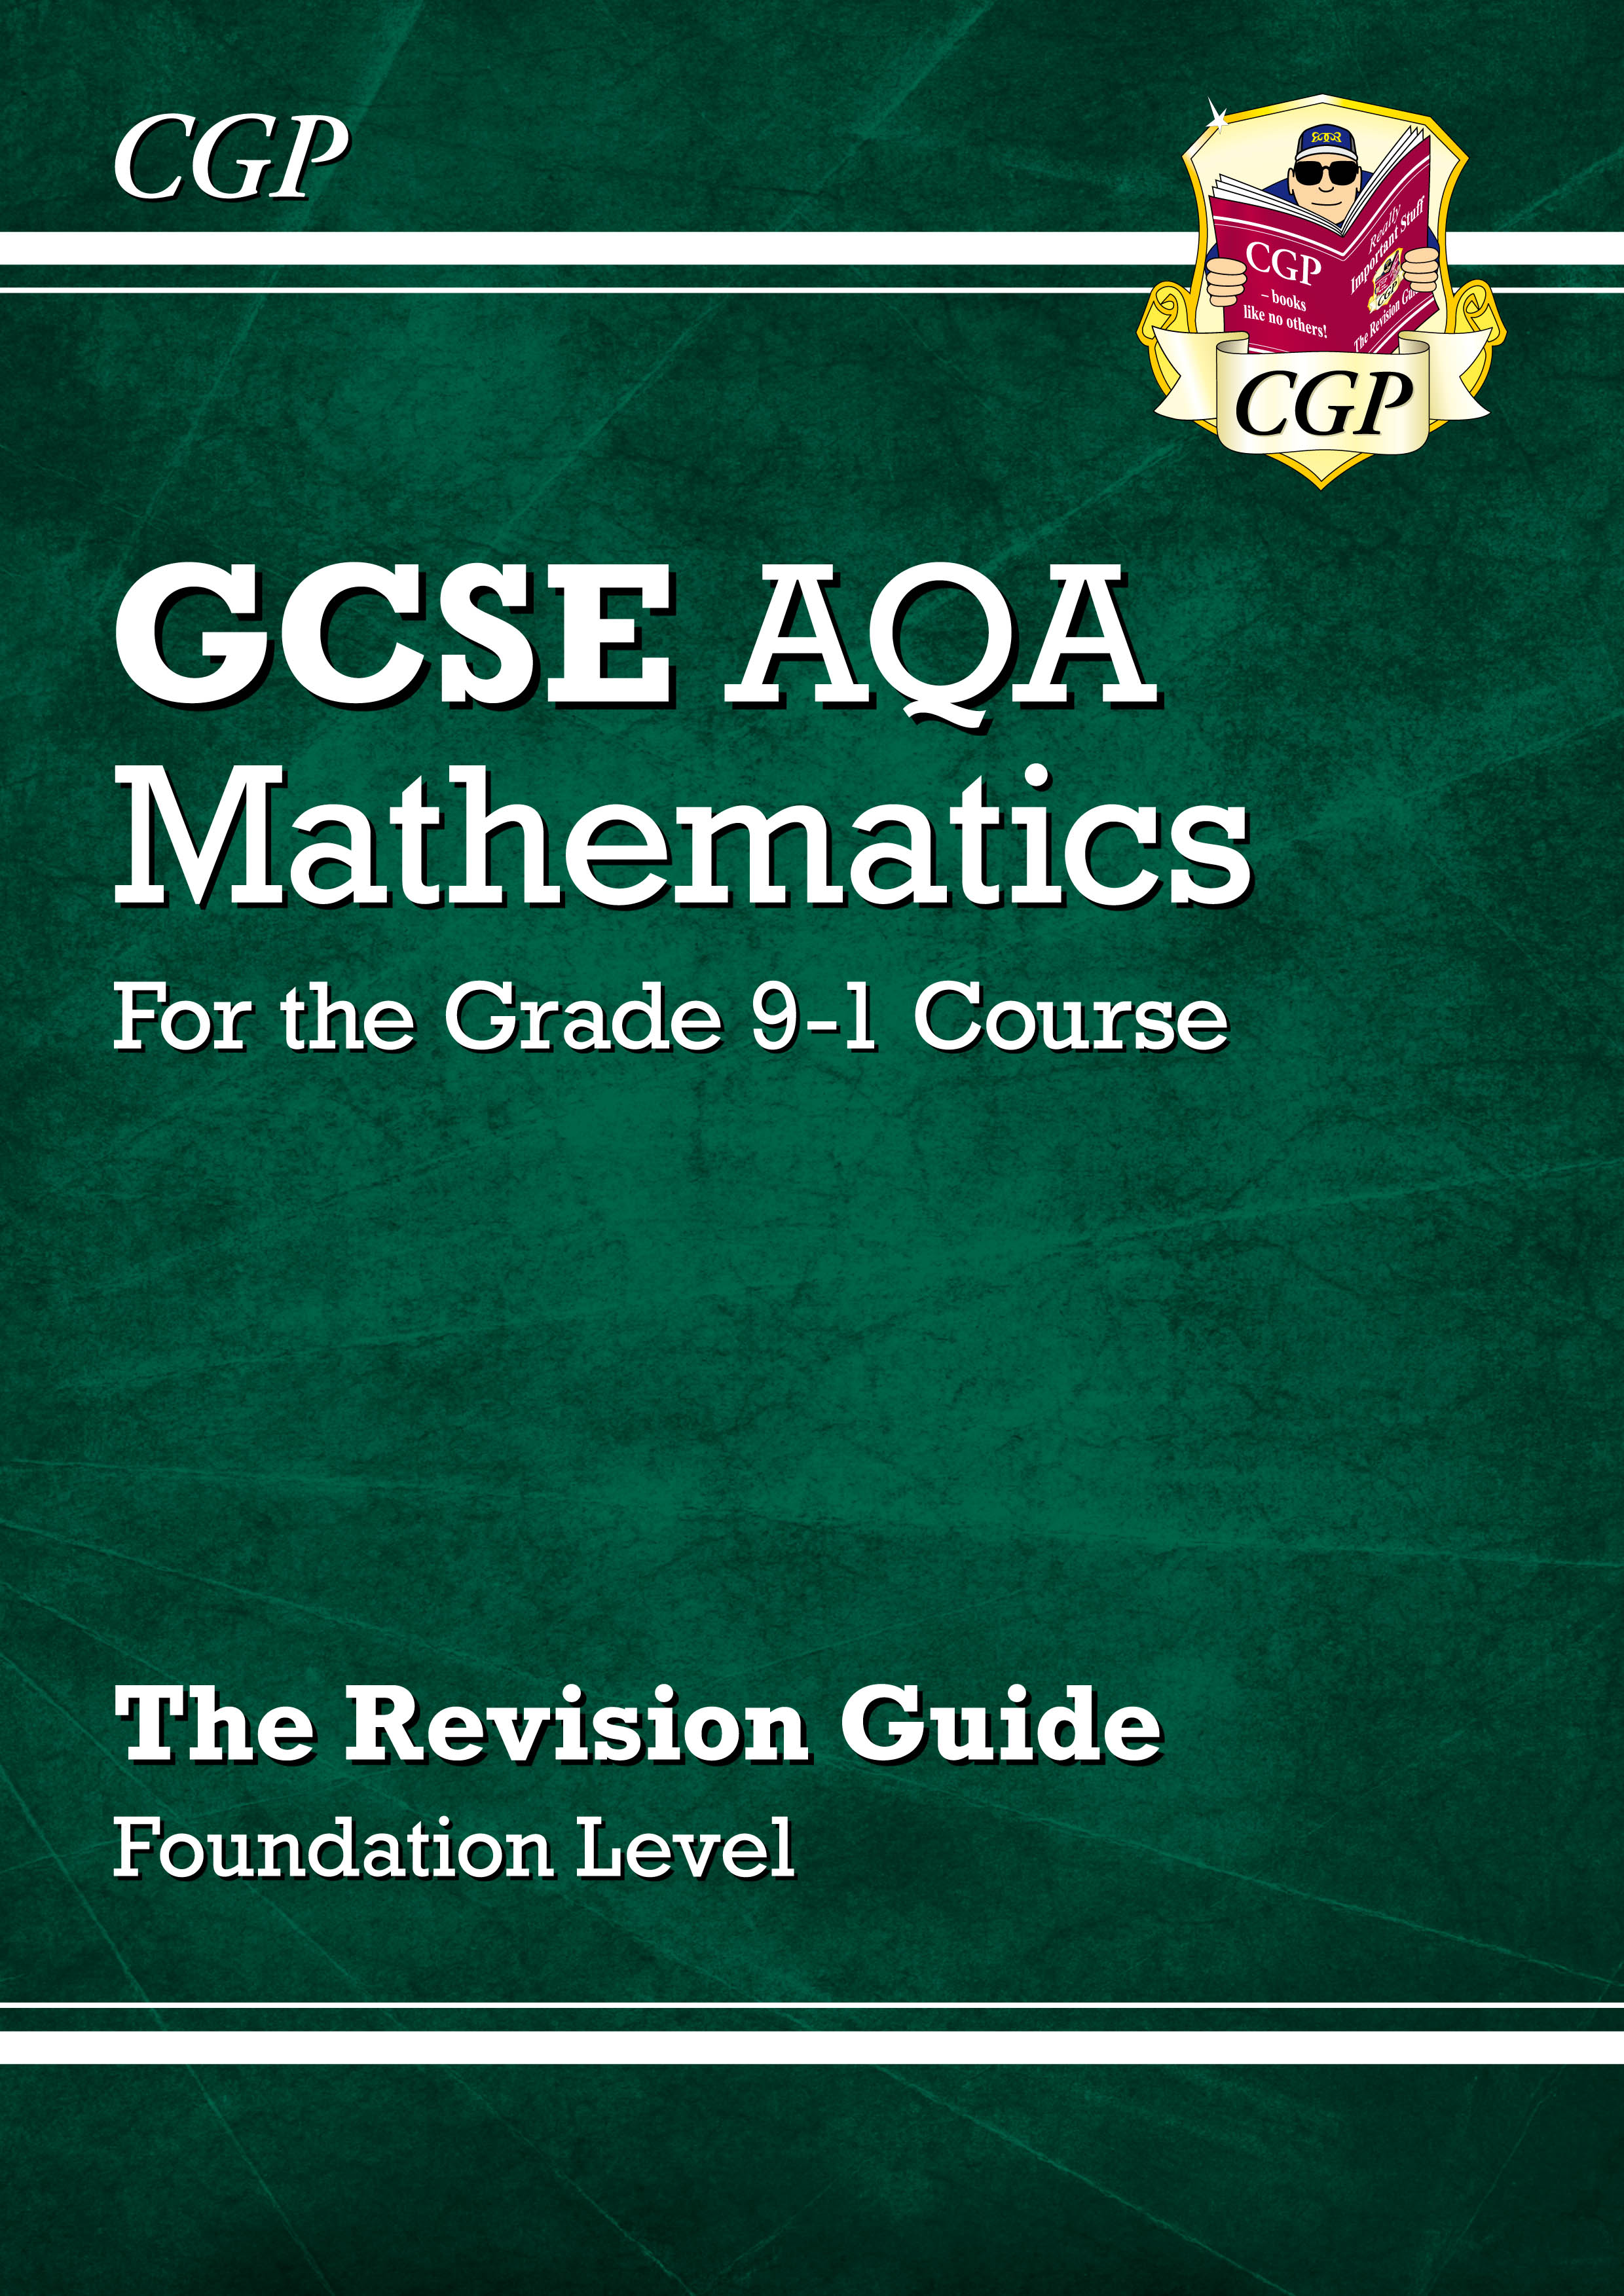 MQFR46DK - GCSE Maths AQA Revision Guide: Foundation - for the Grade 9-1 Course